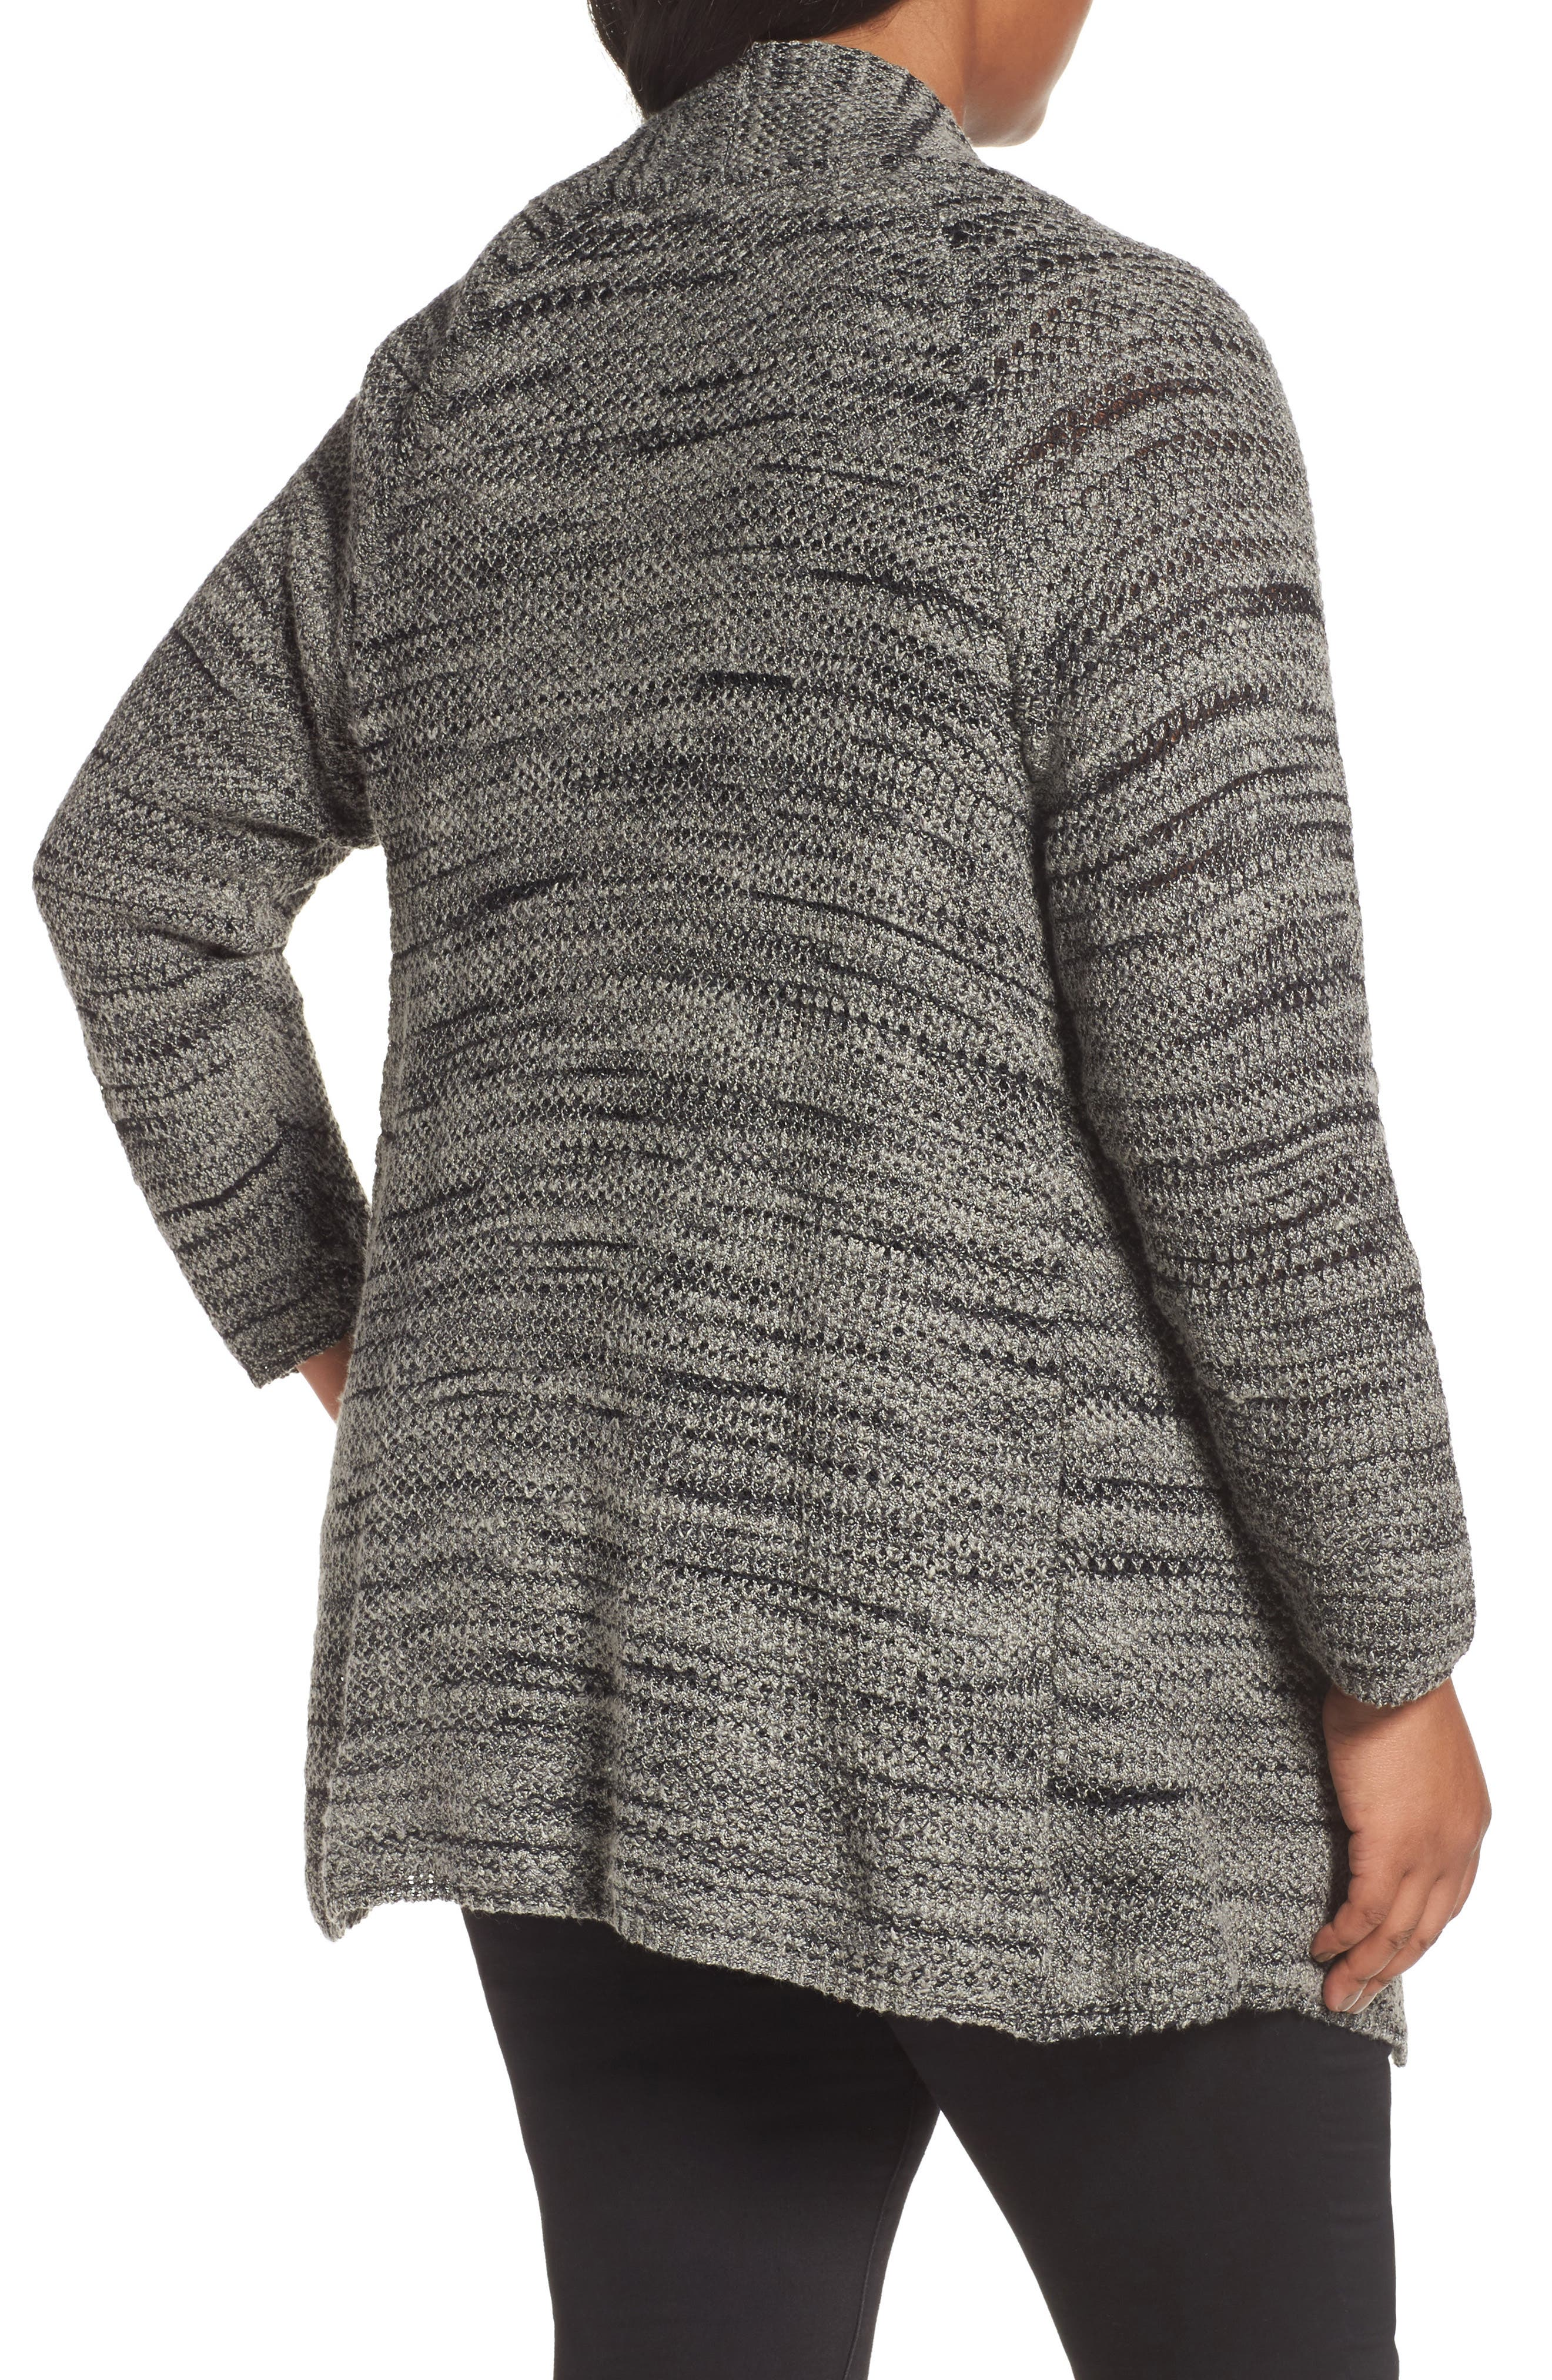 Thick & Thin Cardigan,                             Alternate thumbnail 2, color,                             259